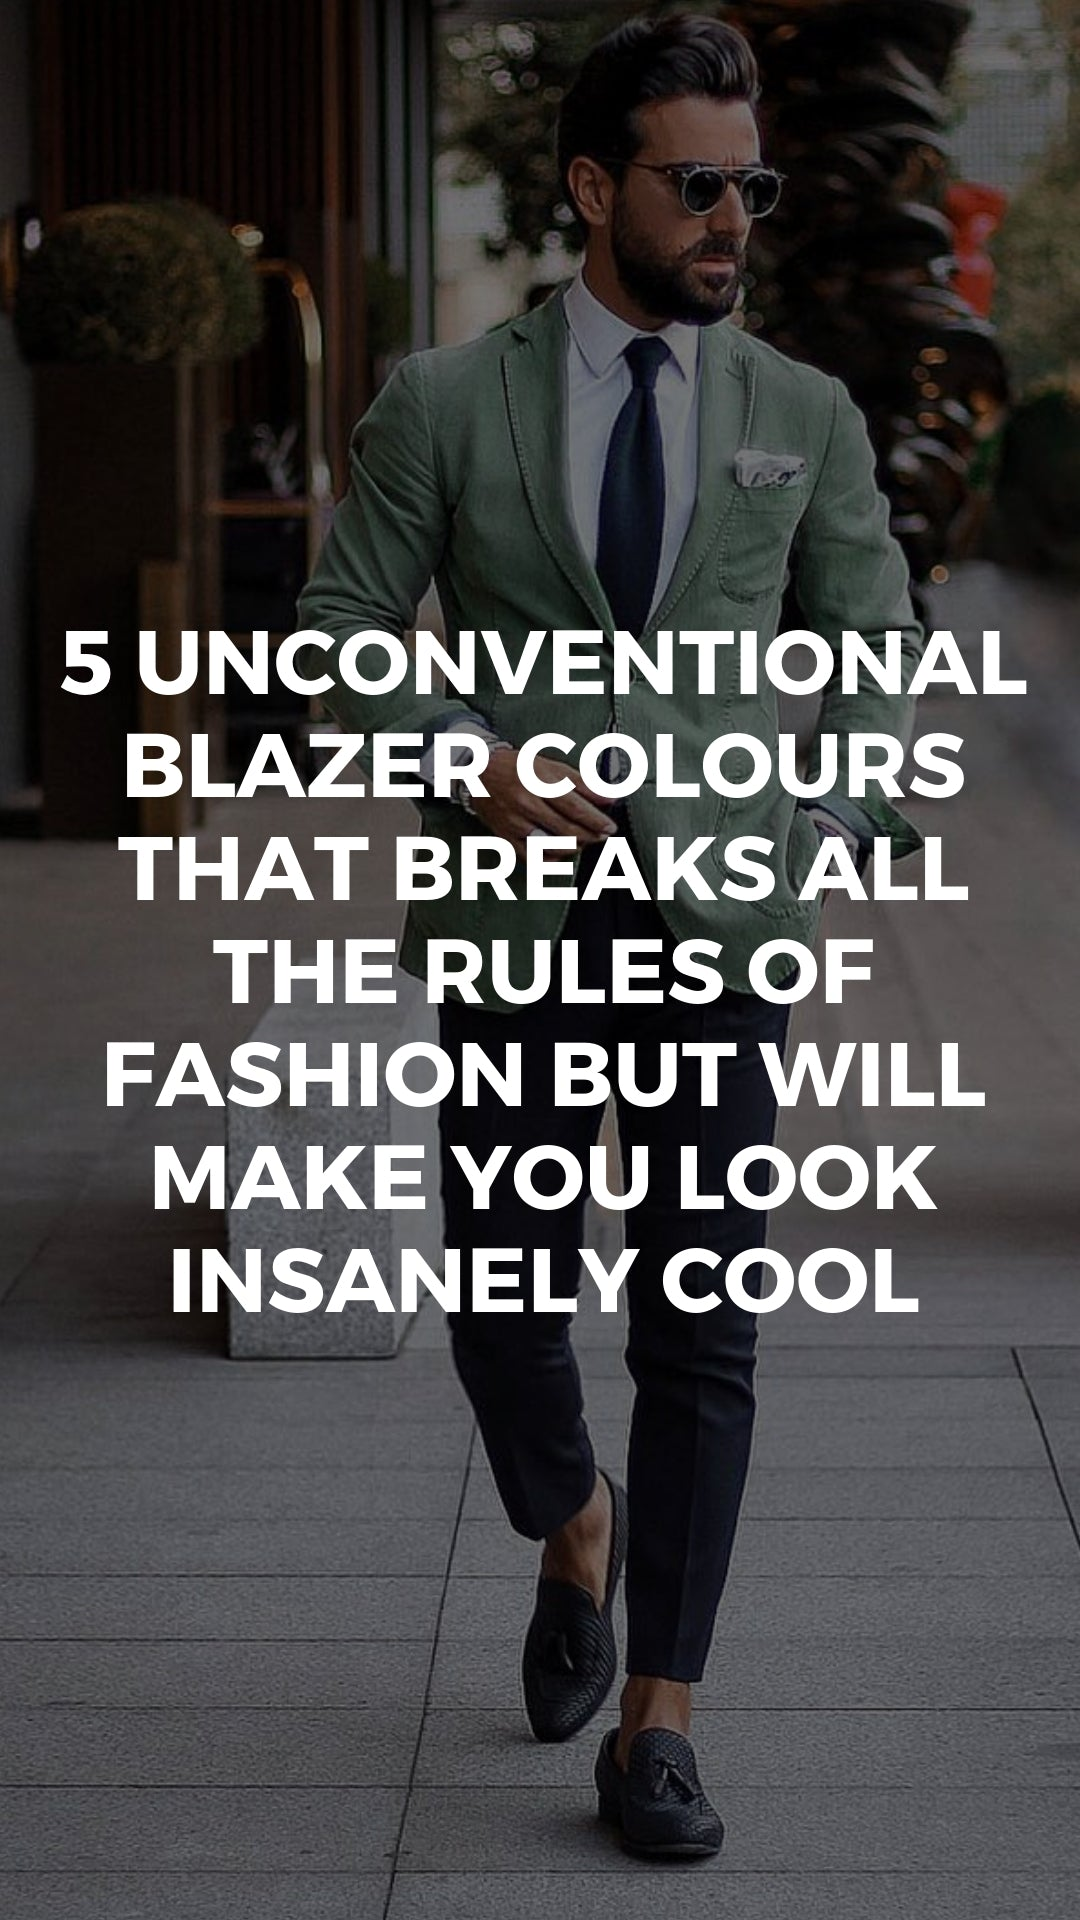 5 Unconventional Blazer Colours That Breaks All The Rules Of Fashion But Will Make You Look Insanely Cool